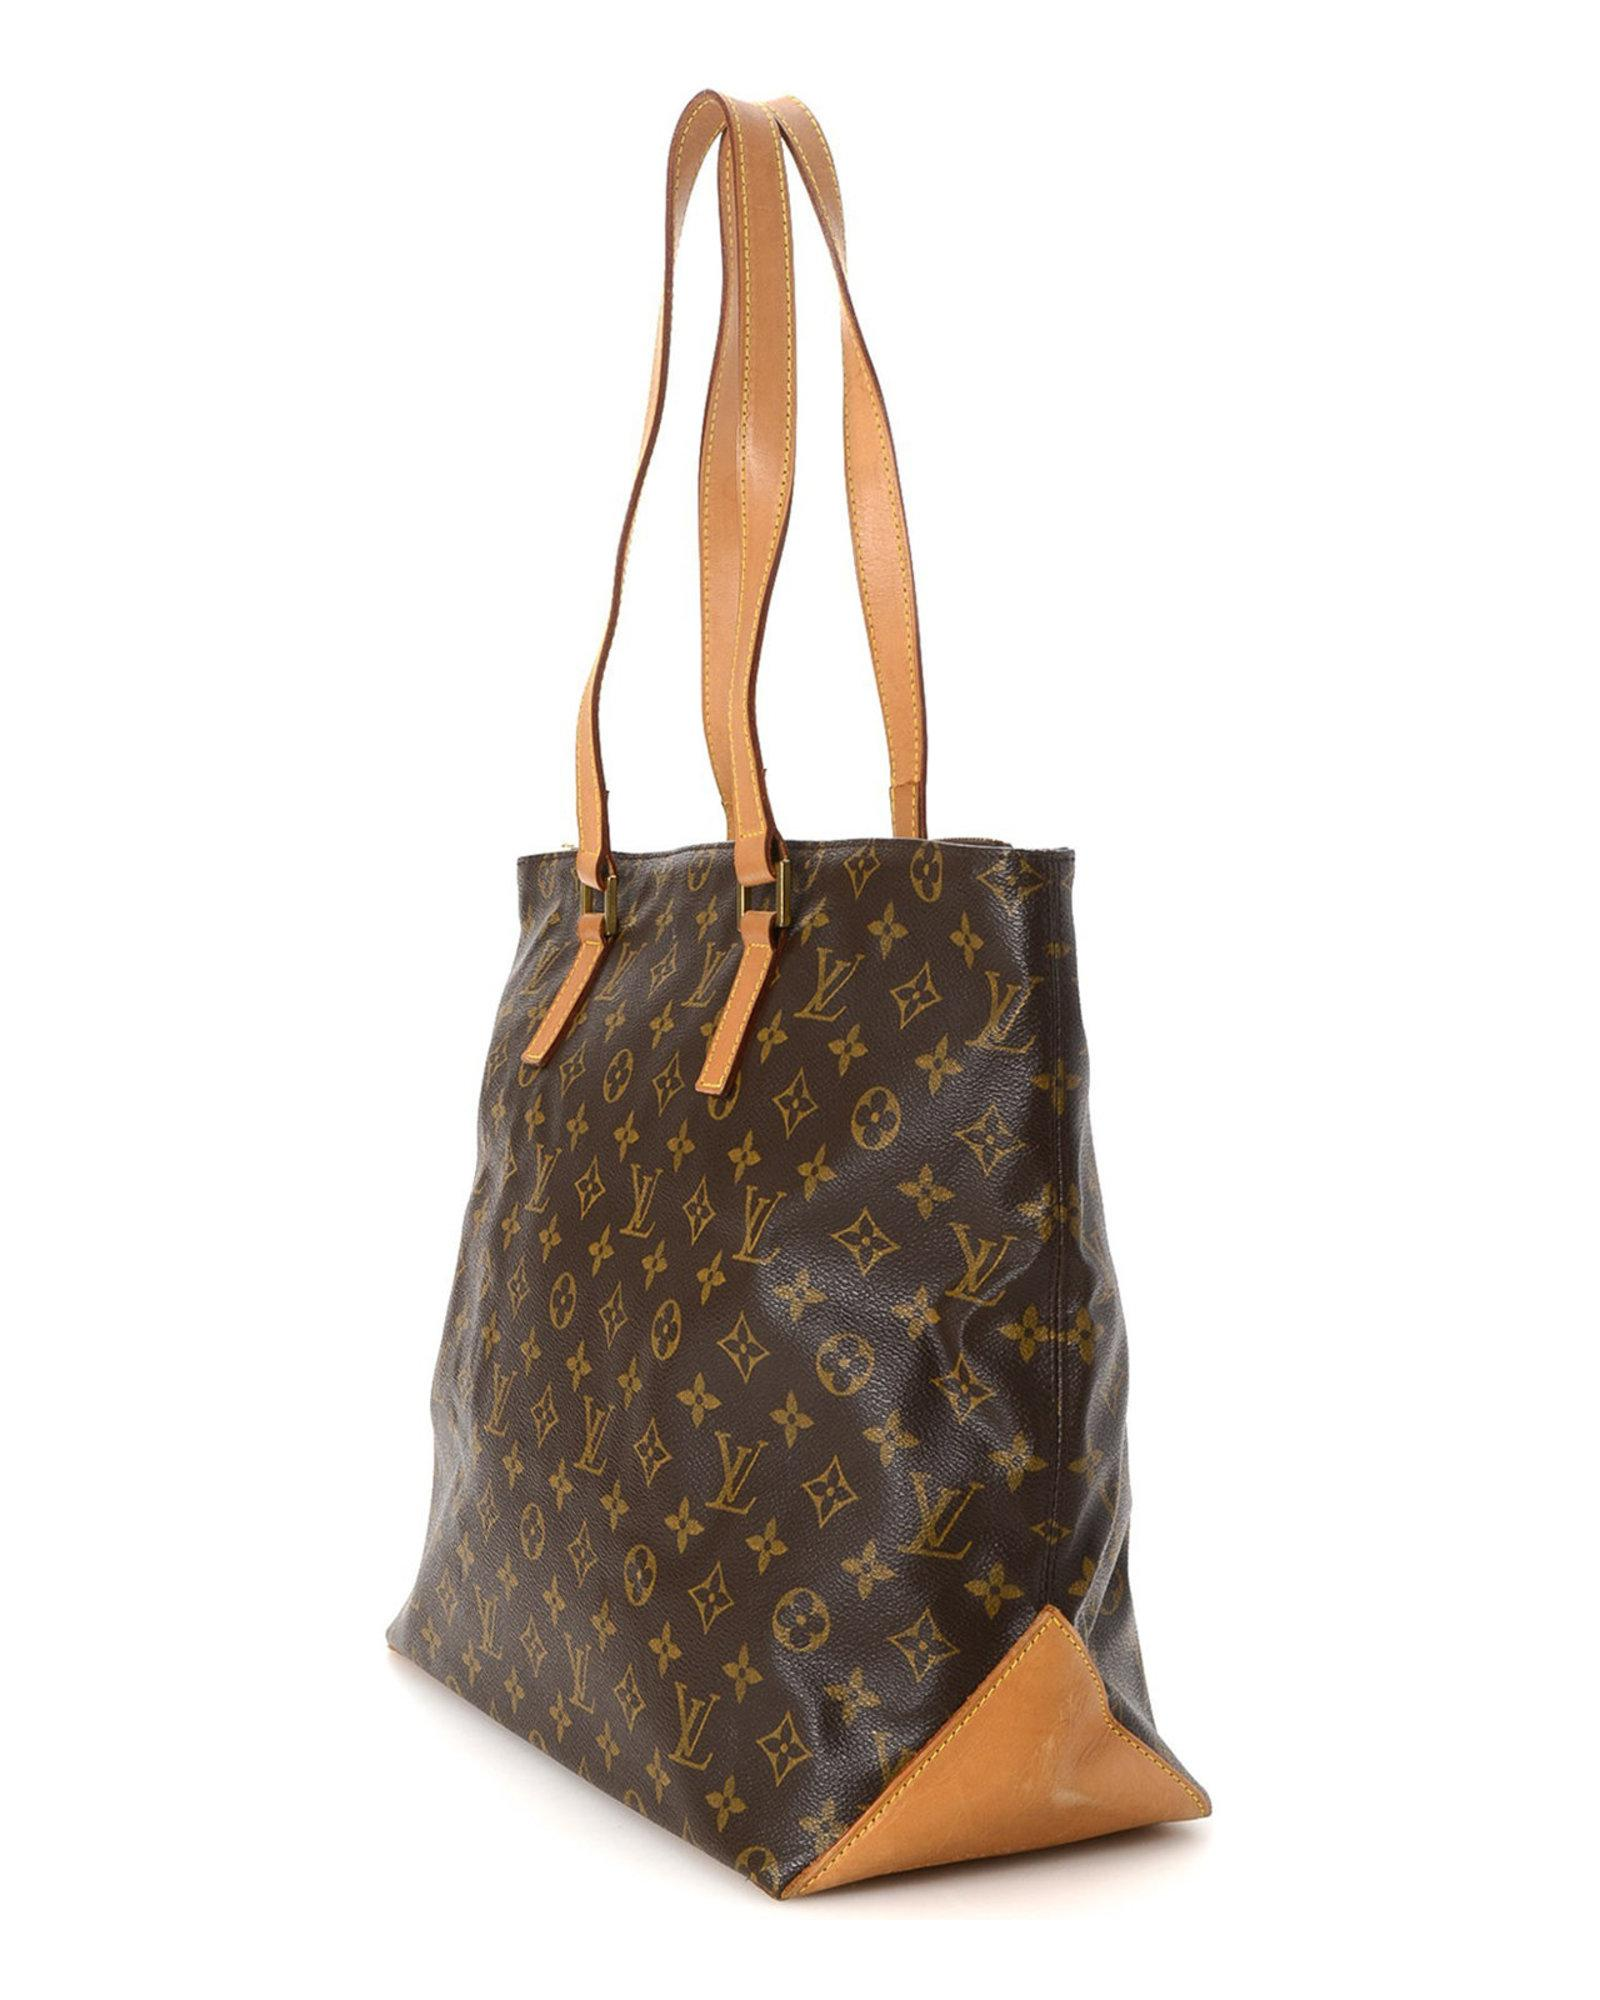 8a260cde1899 Lyst - Louis Vuitton Tote Bag - Vintage in Brown